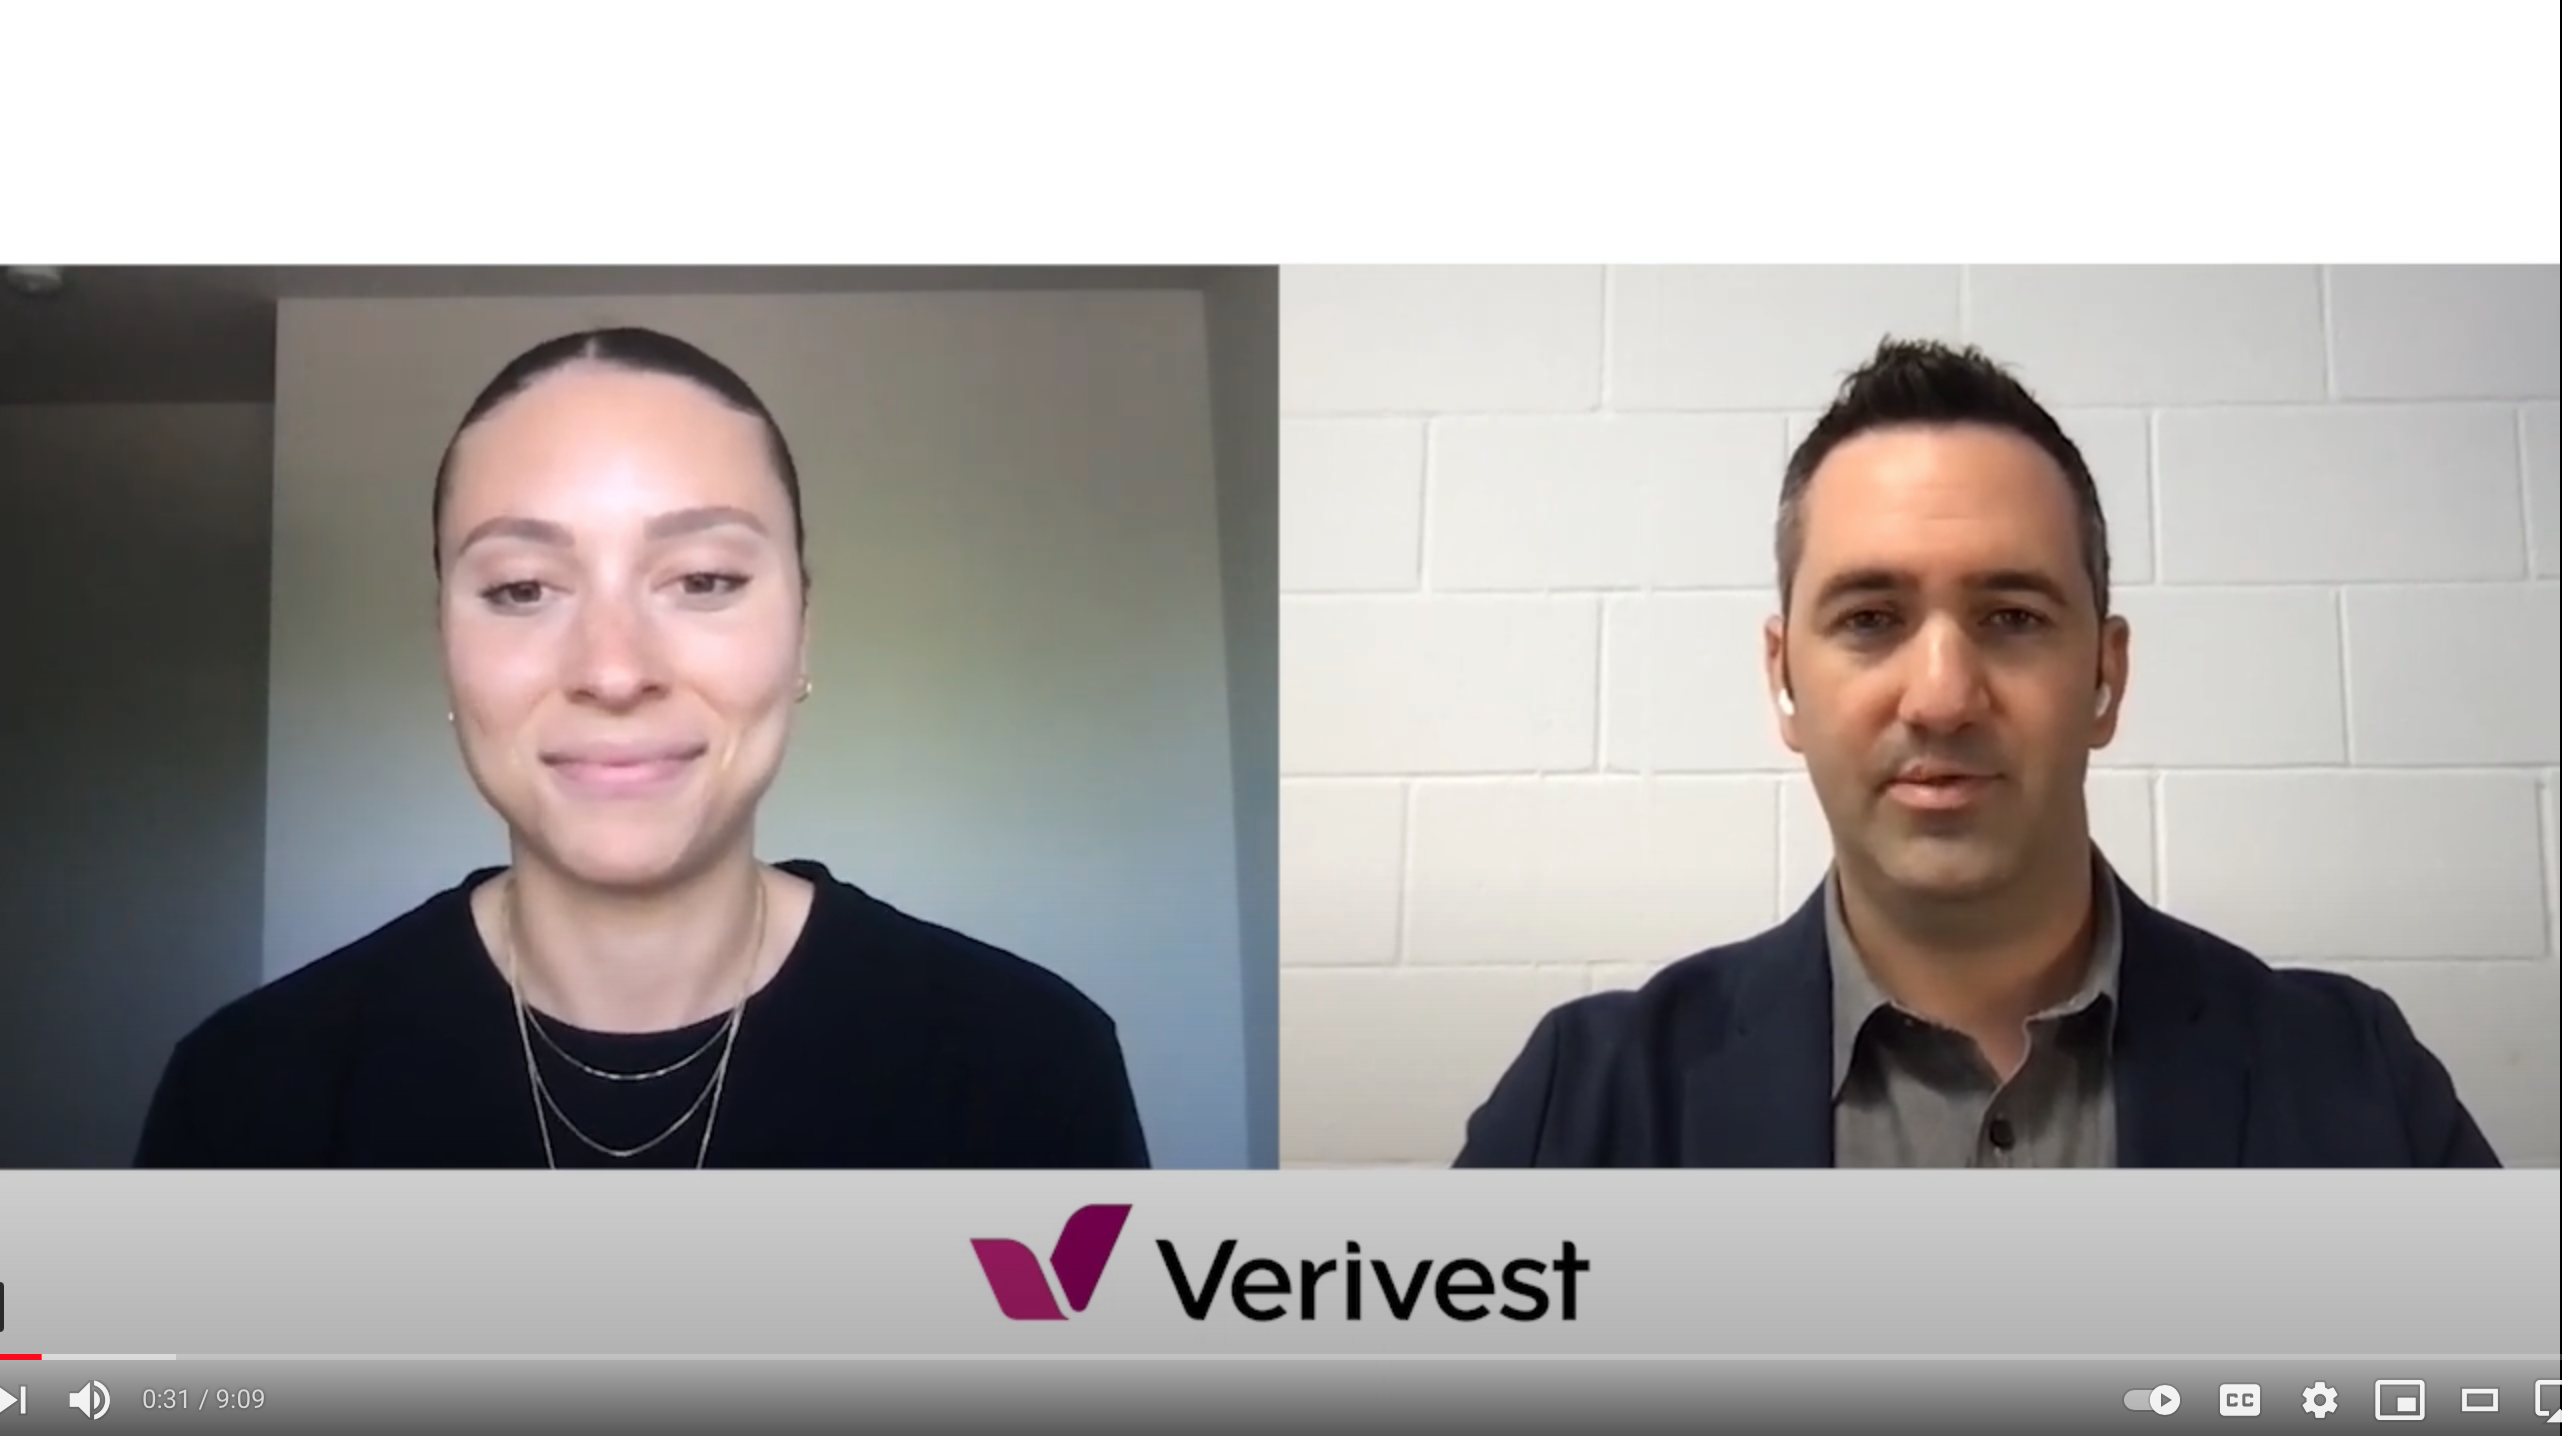 Interview with Verivest